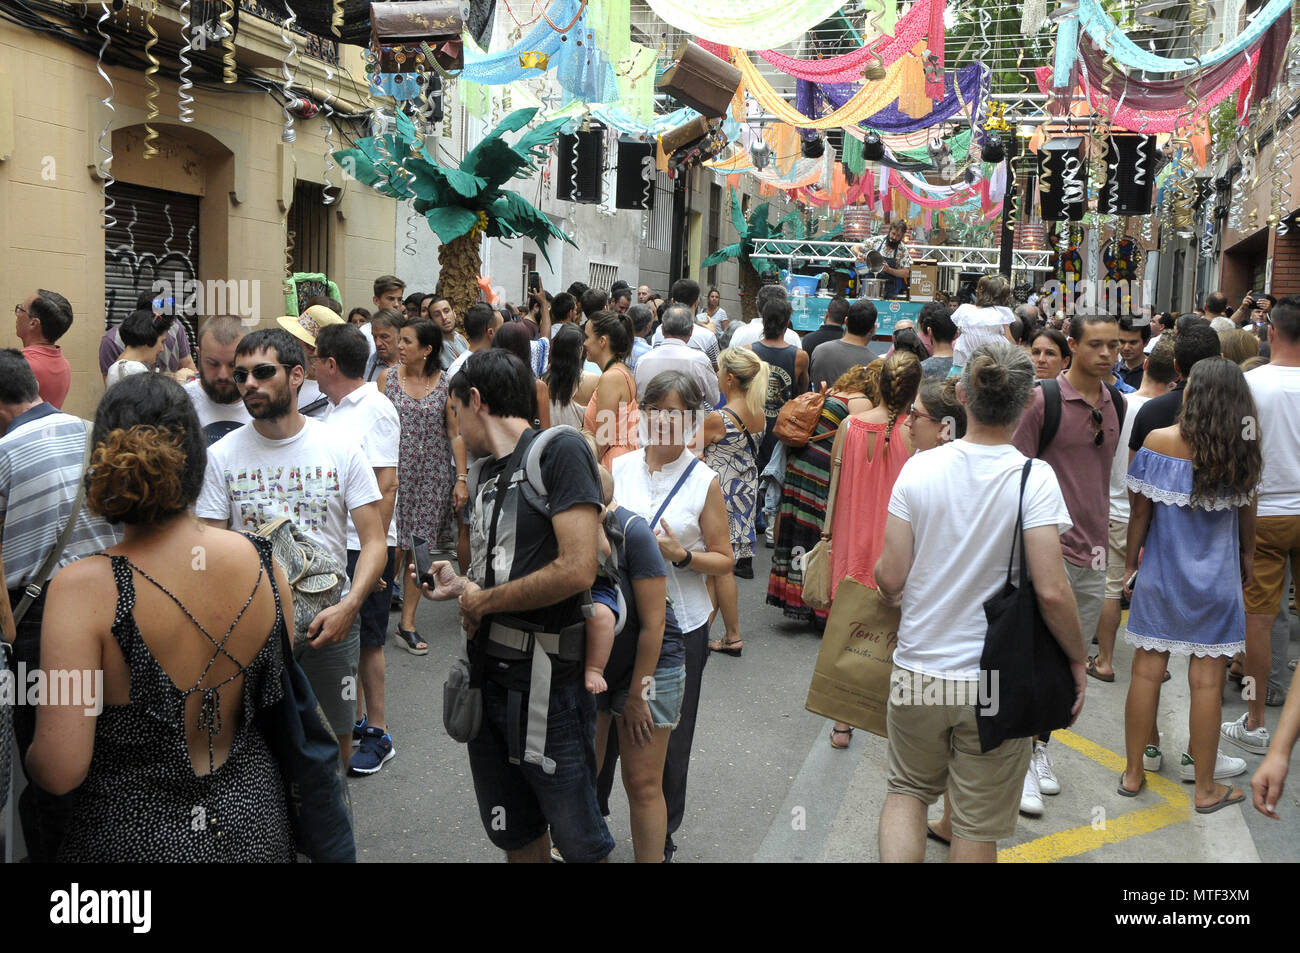 STRETS DECORETED DURING GRACIA DISTRICT SUMMER FESTIVAL IN BARCELONA, PEOPLE VISITING THE DIFERENT STREETS DECORATIONS AROUND GRACIA FEST. Foto: Rosmi - Stock Image